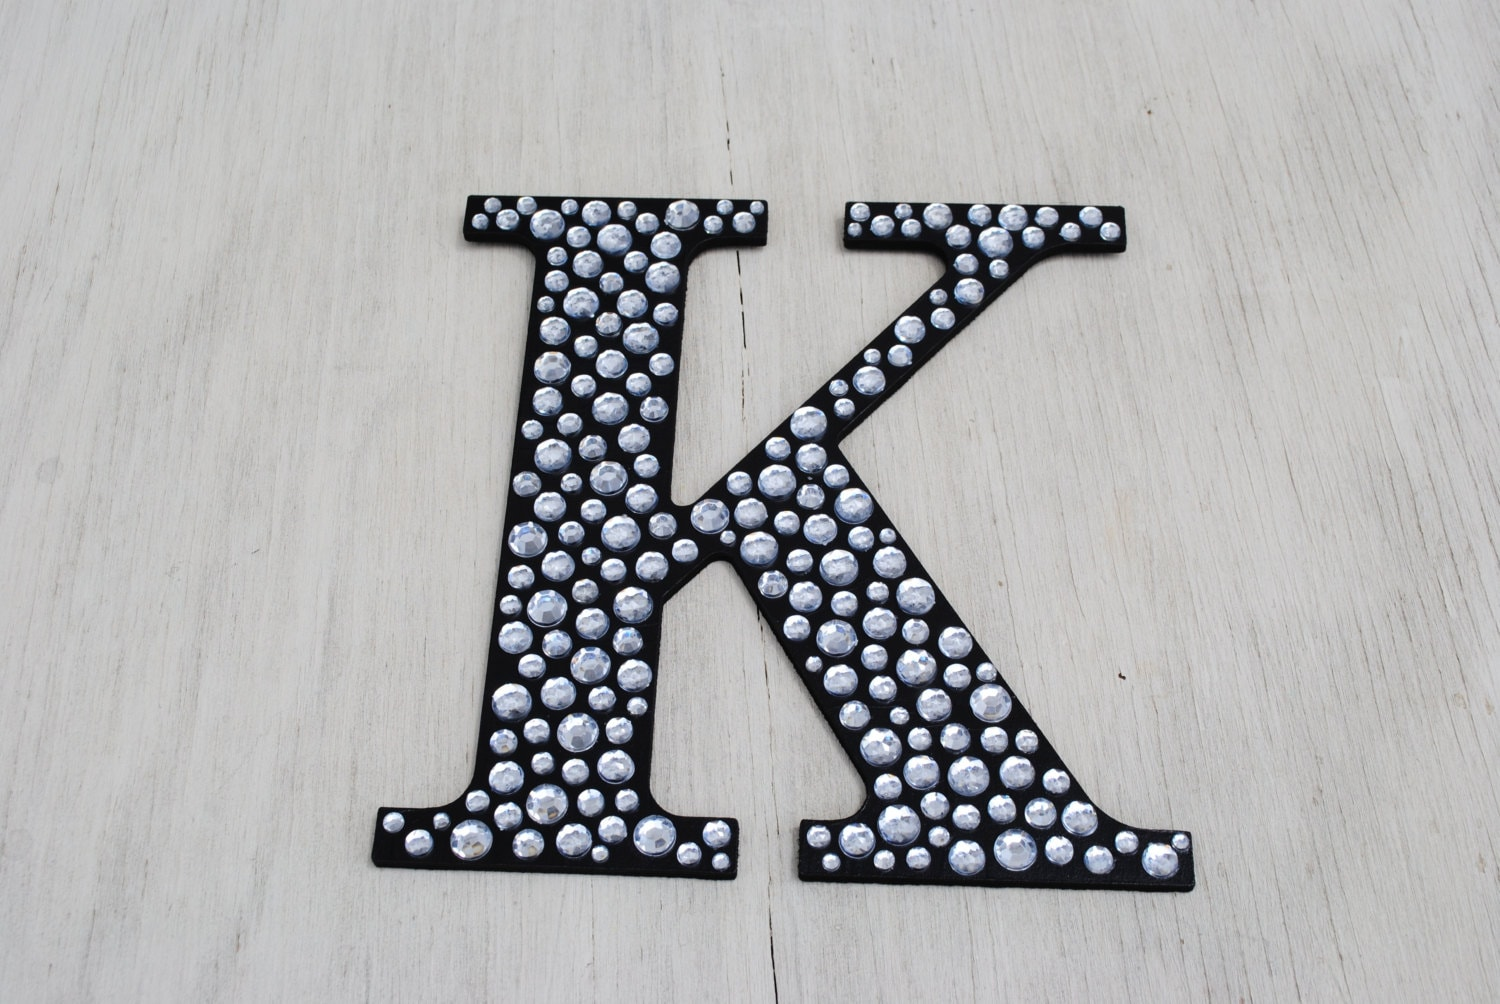 9 sparkle black bling decorative wall letters for Black wall letters